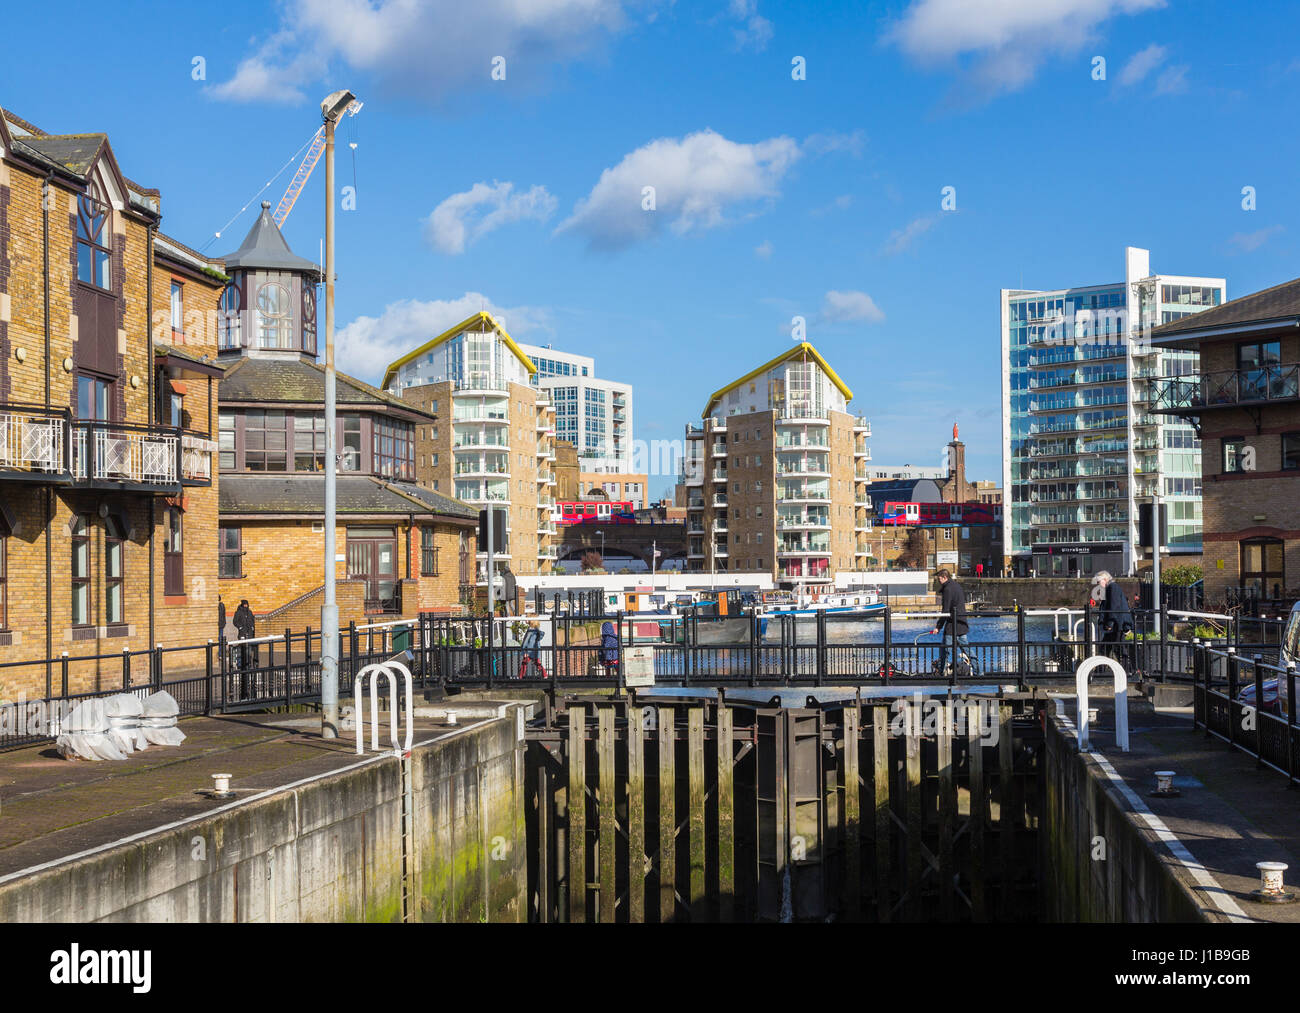 Lock gates into canal leading to Limehouse Basin Marina in Docklands, London, England - Stock Image